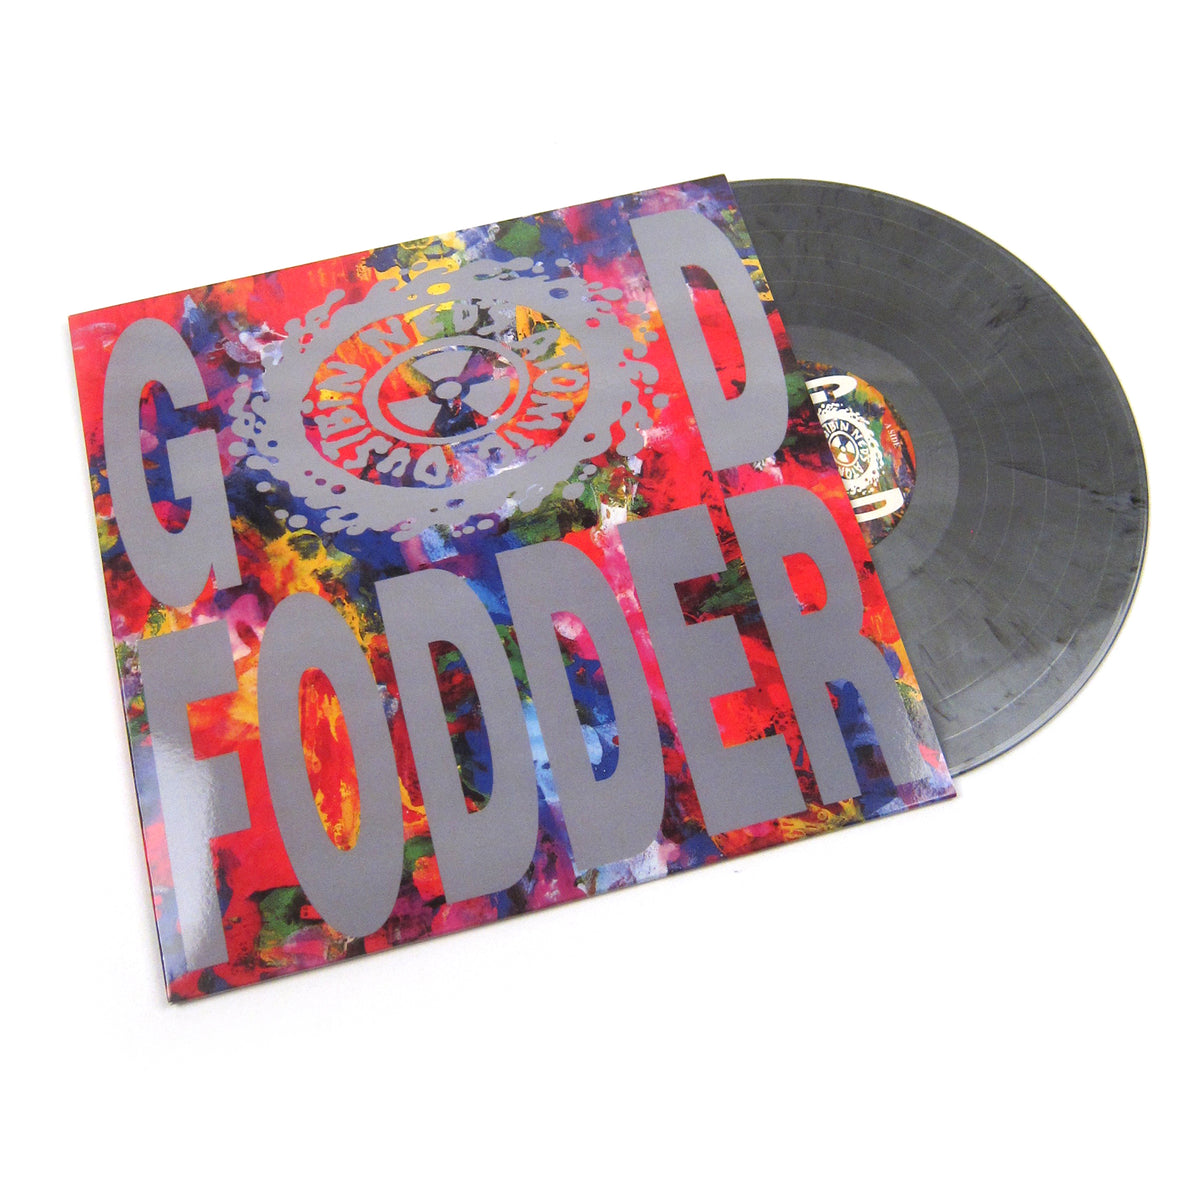 Ned's Atomic Dustbin: God Fodder (Music On Vinyl 180g, Colored Vinyl) Vinyl LP